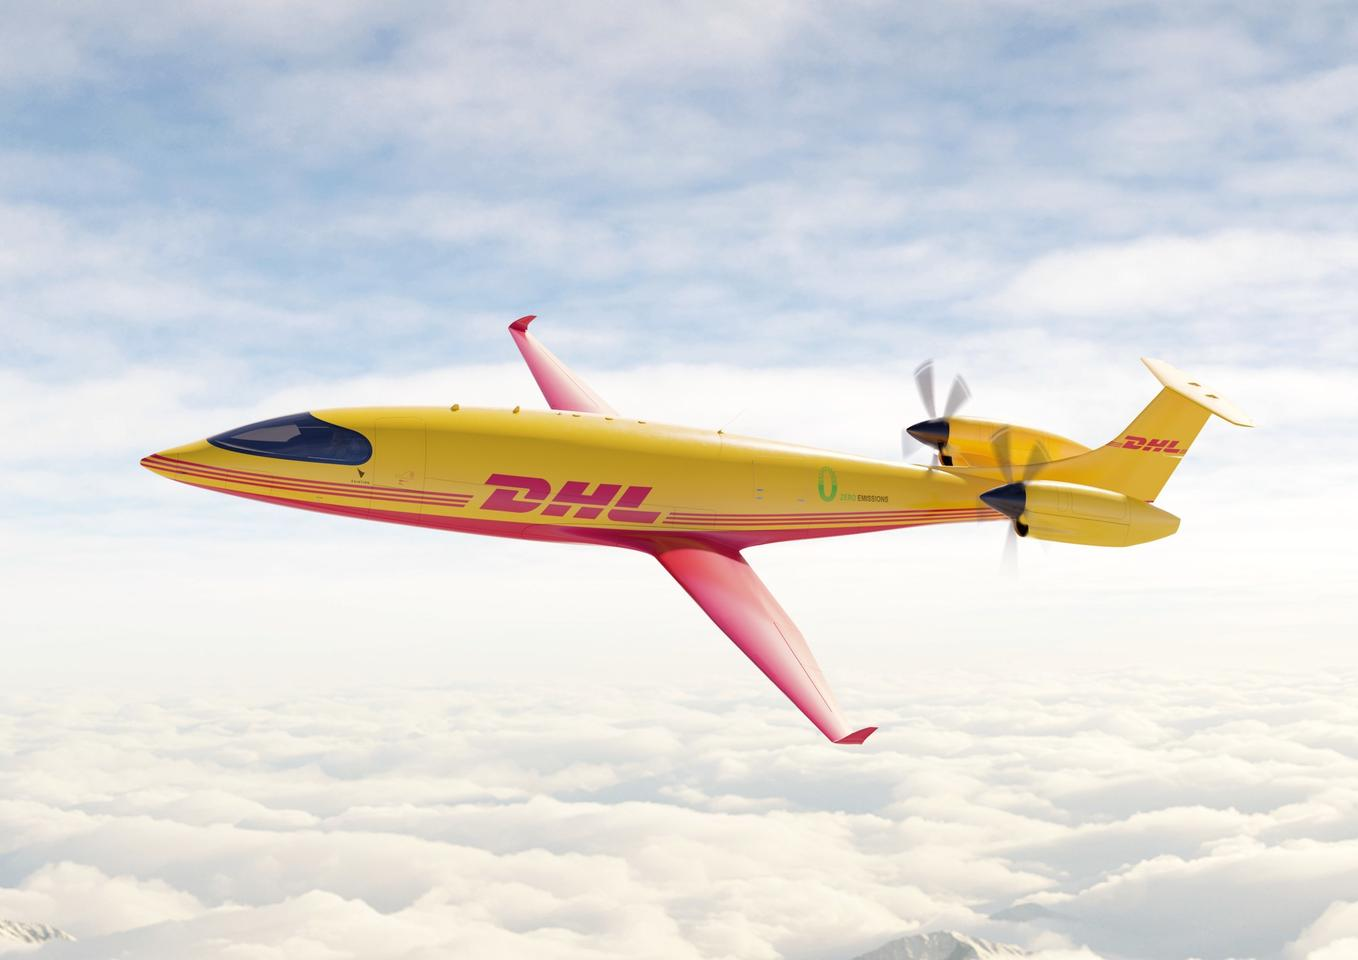 DHL Express has ordered 12 Alice eCargo all-electric aircraft from Eviation, due for delivery in 2024